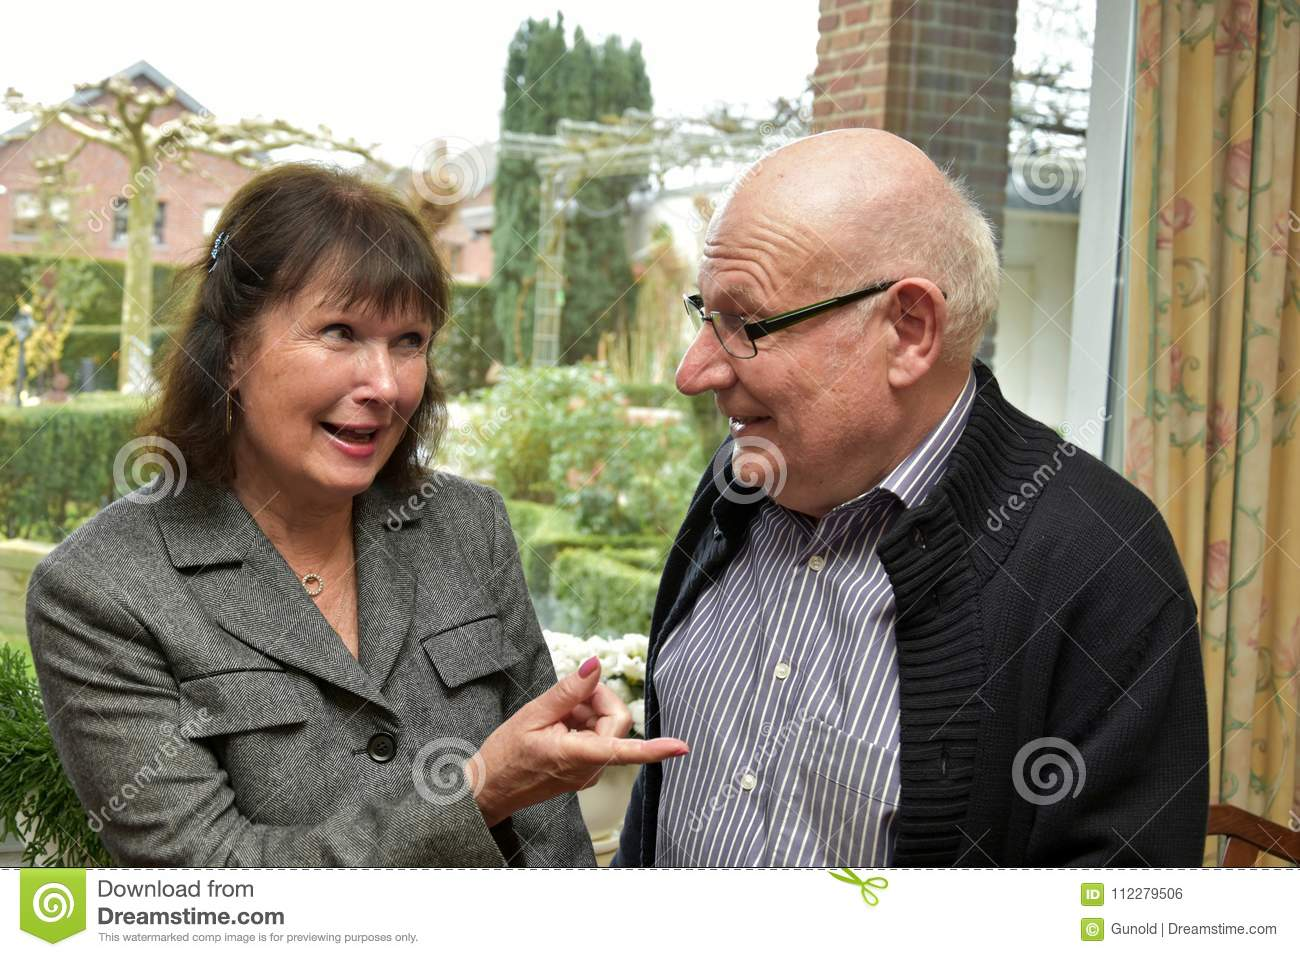 Woman Playfully Scolding A Man Stock Photo Image Of Laughing